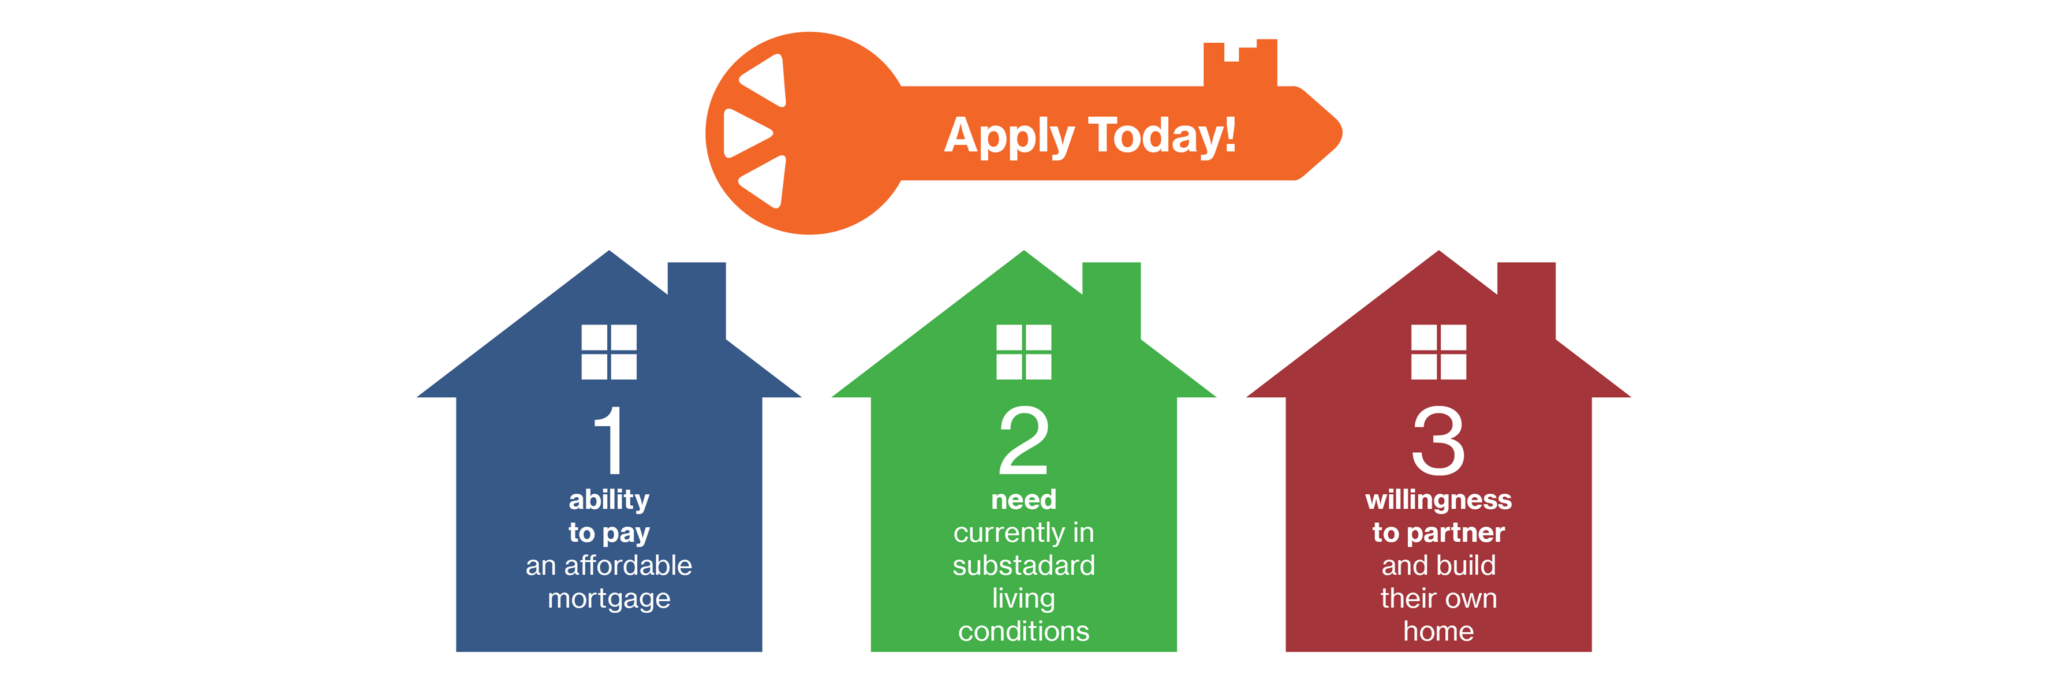 Watauga Habitat For Humanity Is Looking For Future Homeowners High